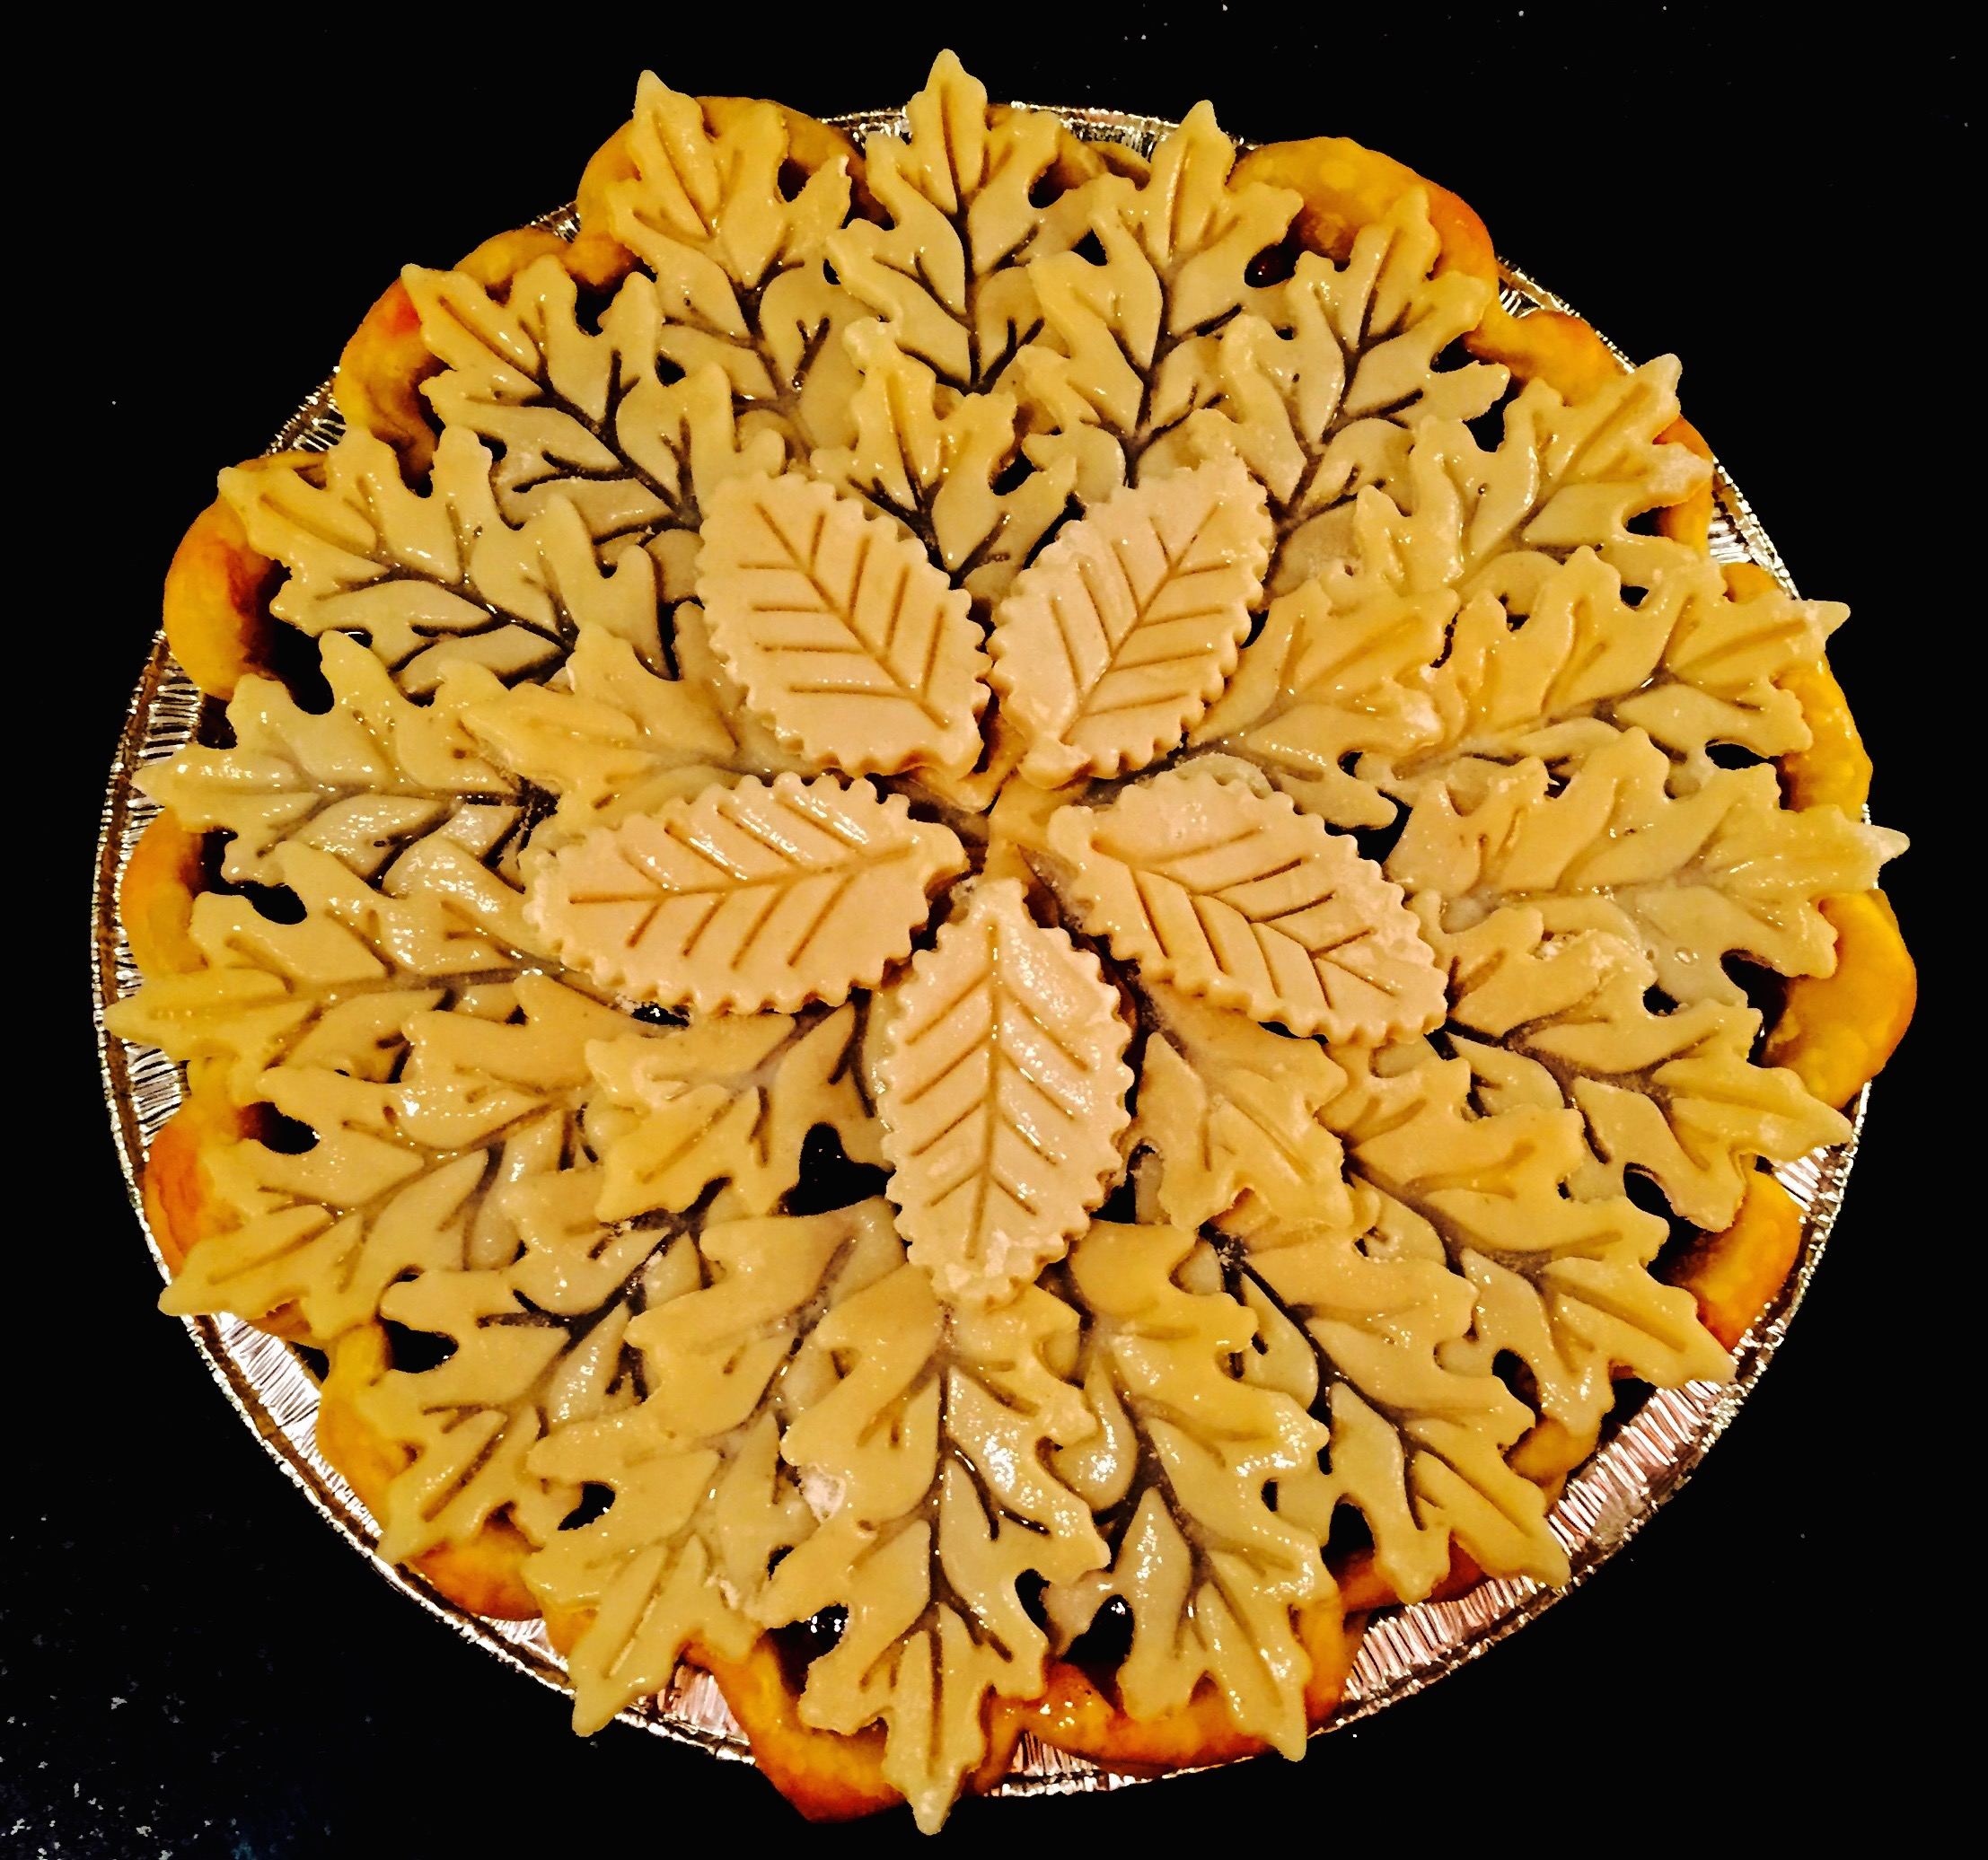 Pecan Pie and Crust